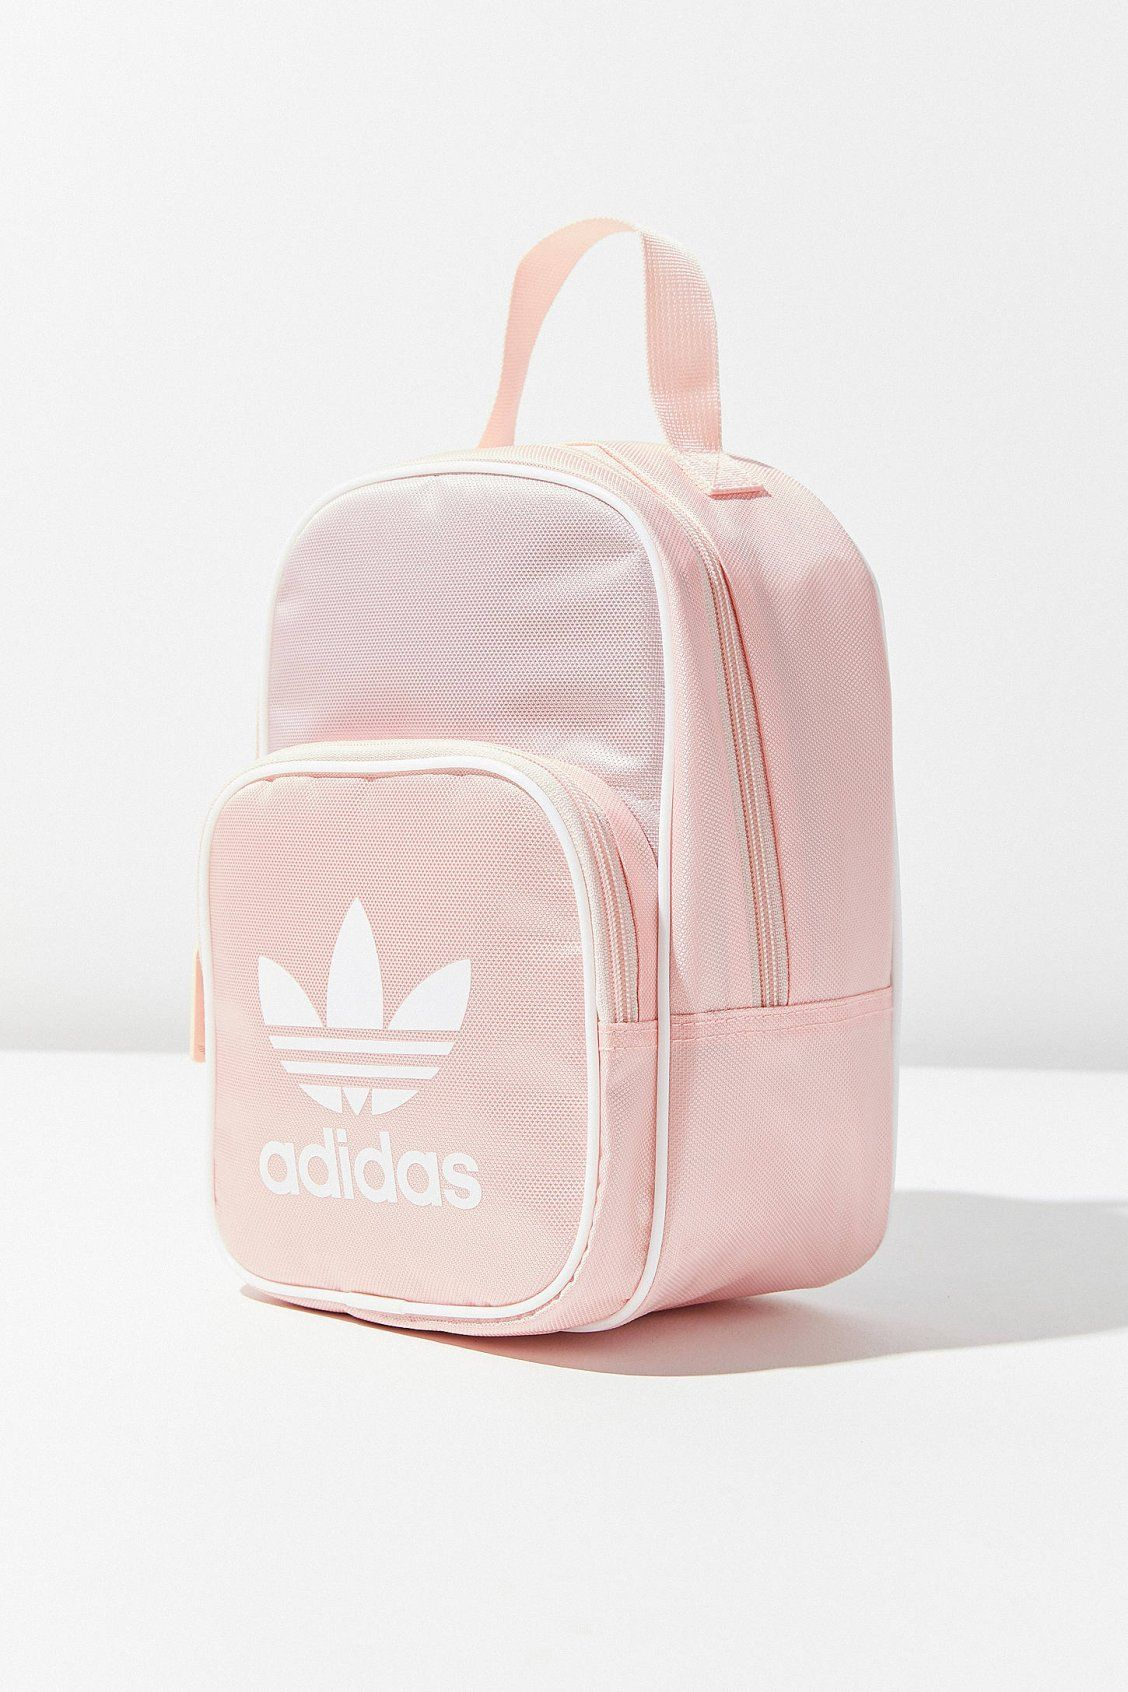 adidas Originals Santiago Lunch Bag   bookbags   Pinterest ... 46fc5ded2d